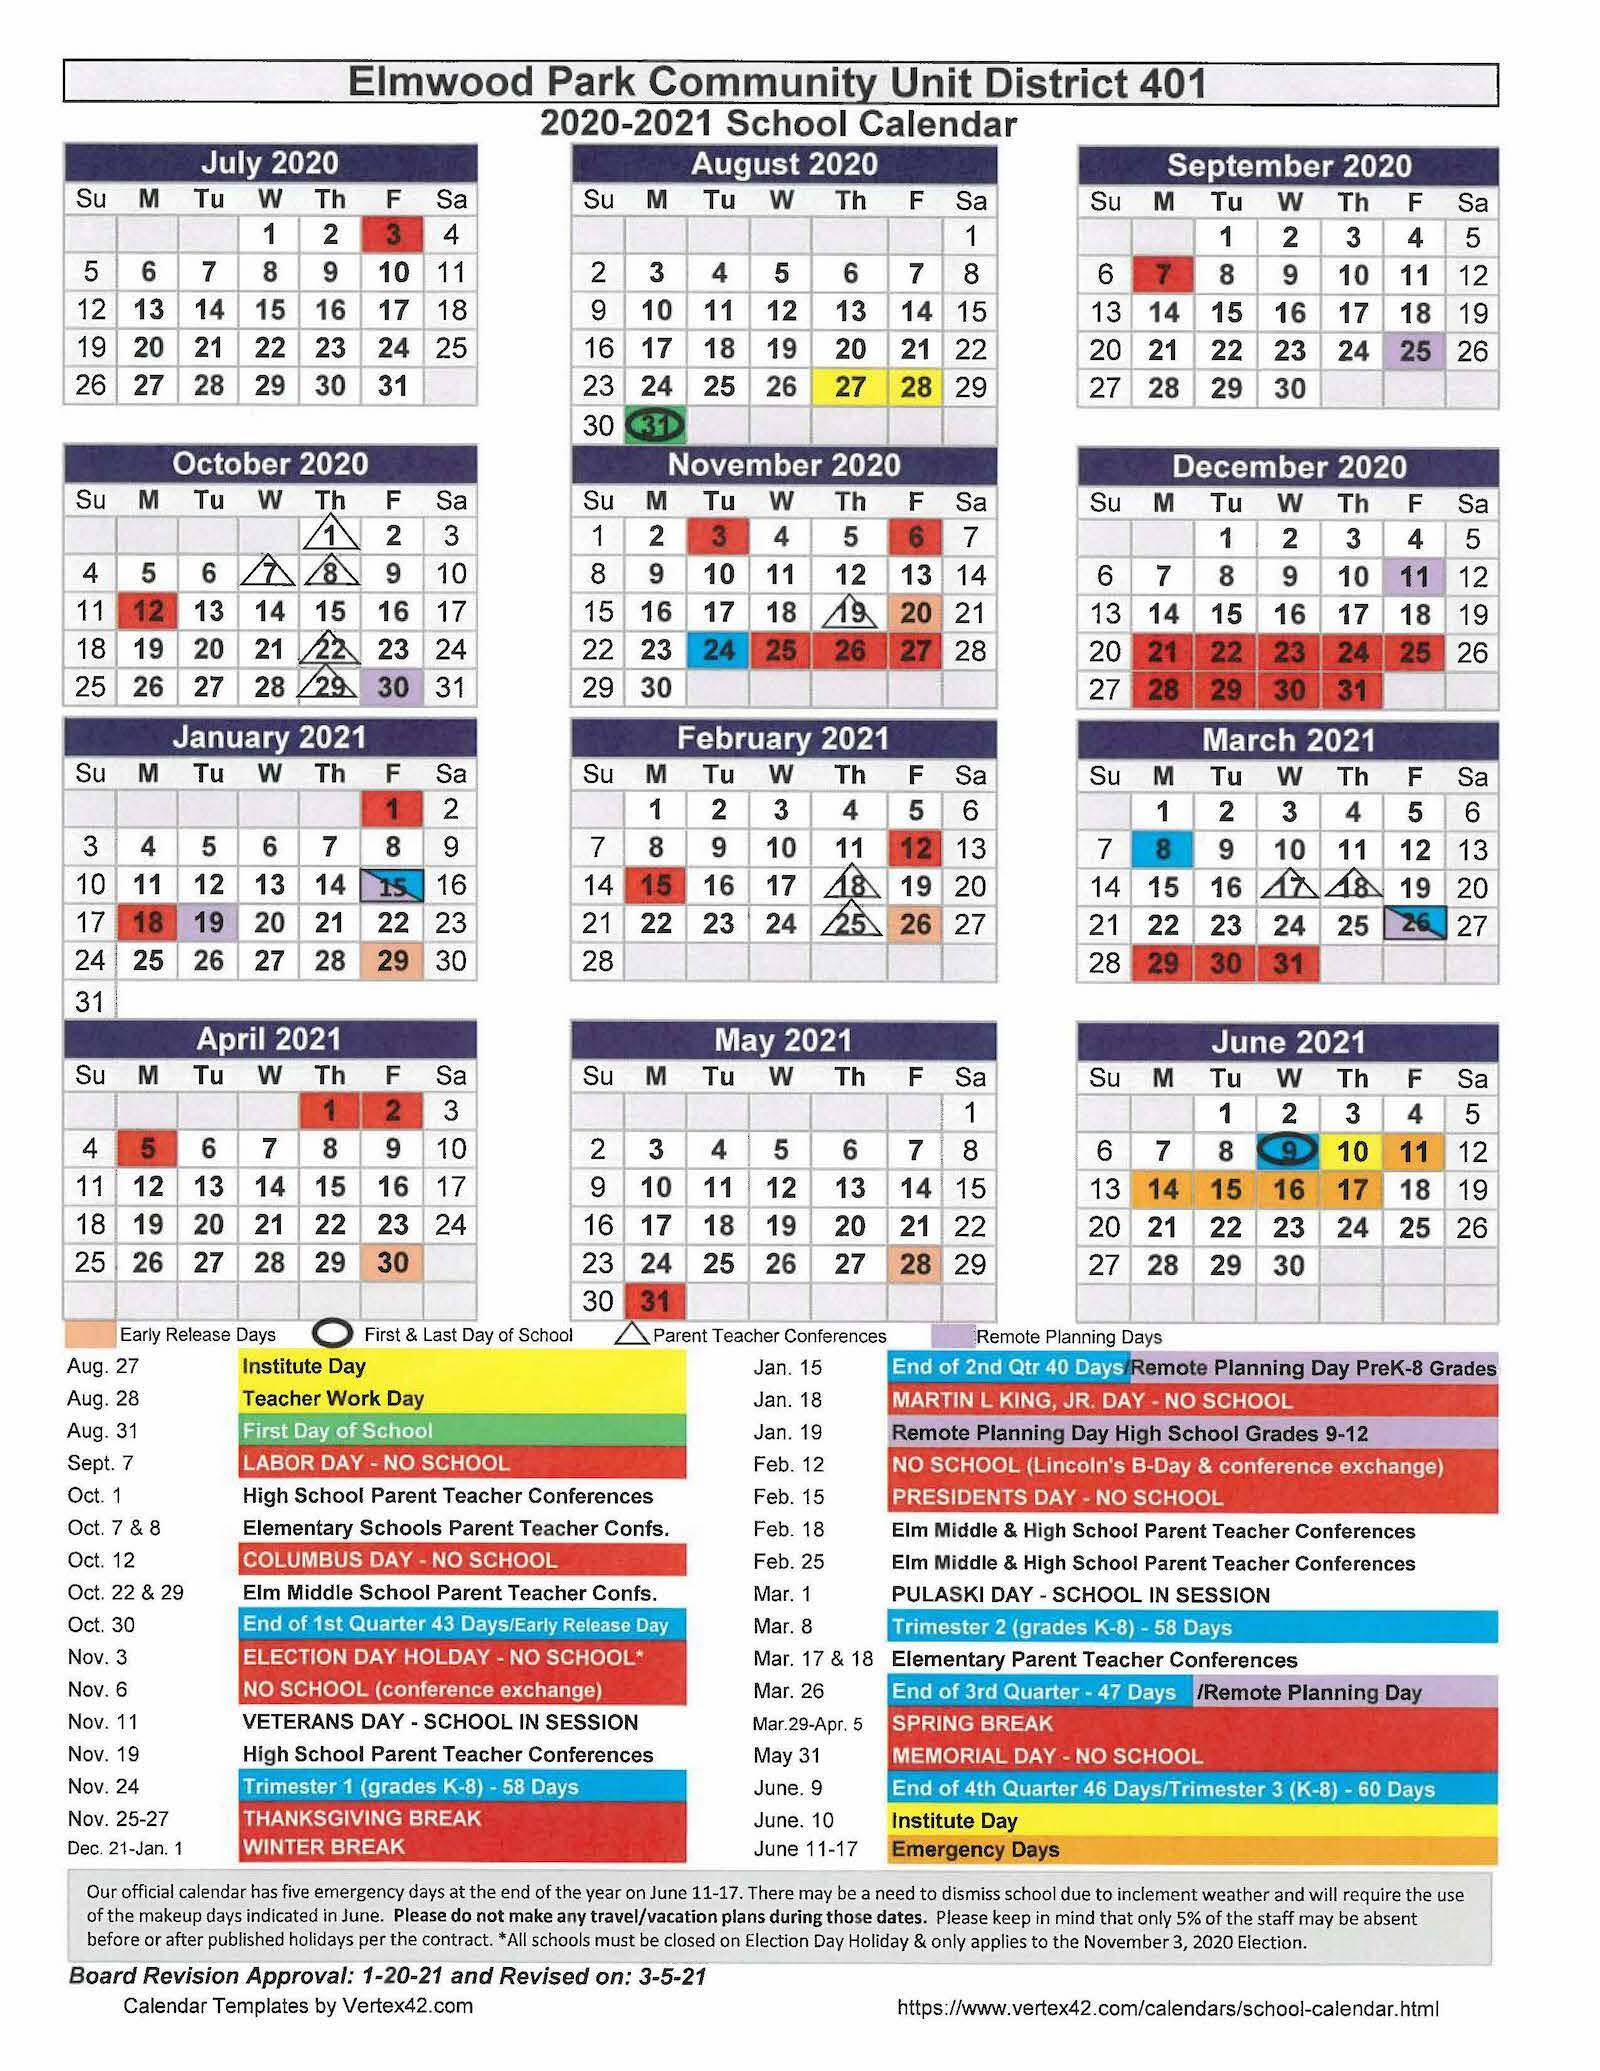 2020-21 revised school-year calendar